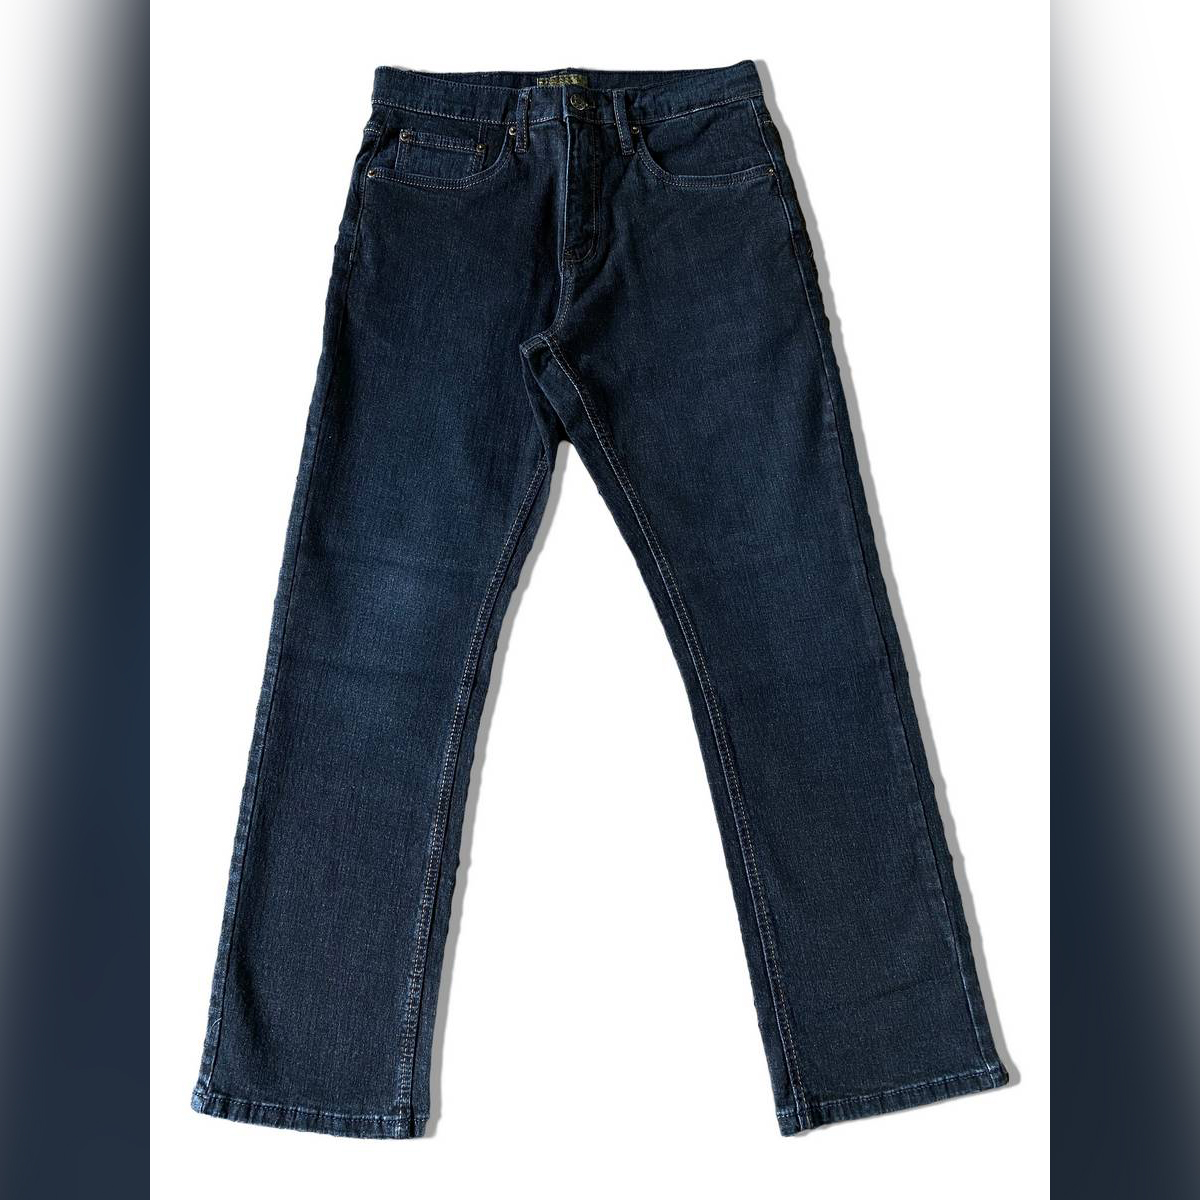 Urban Star USA Premium Relaxed Fit Jeans for Men